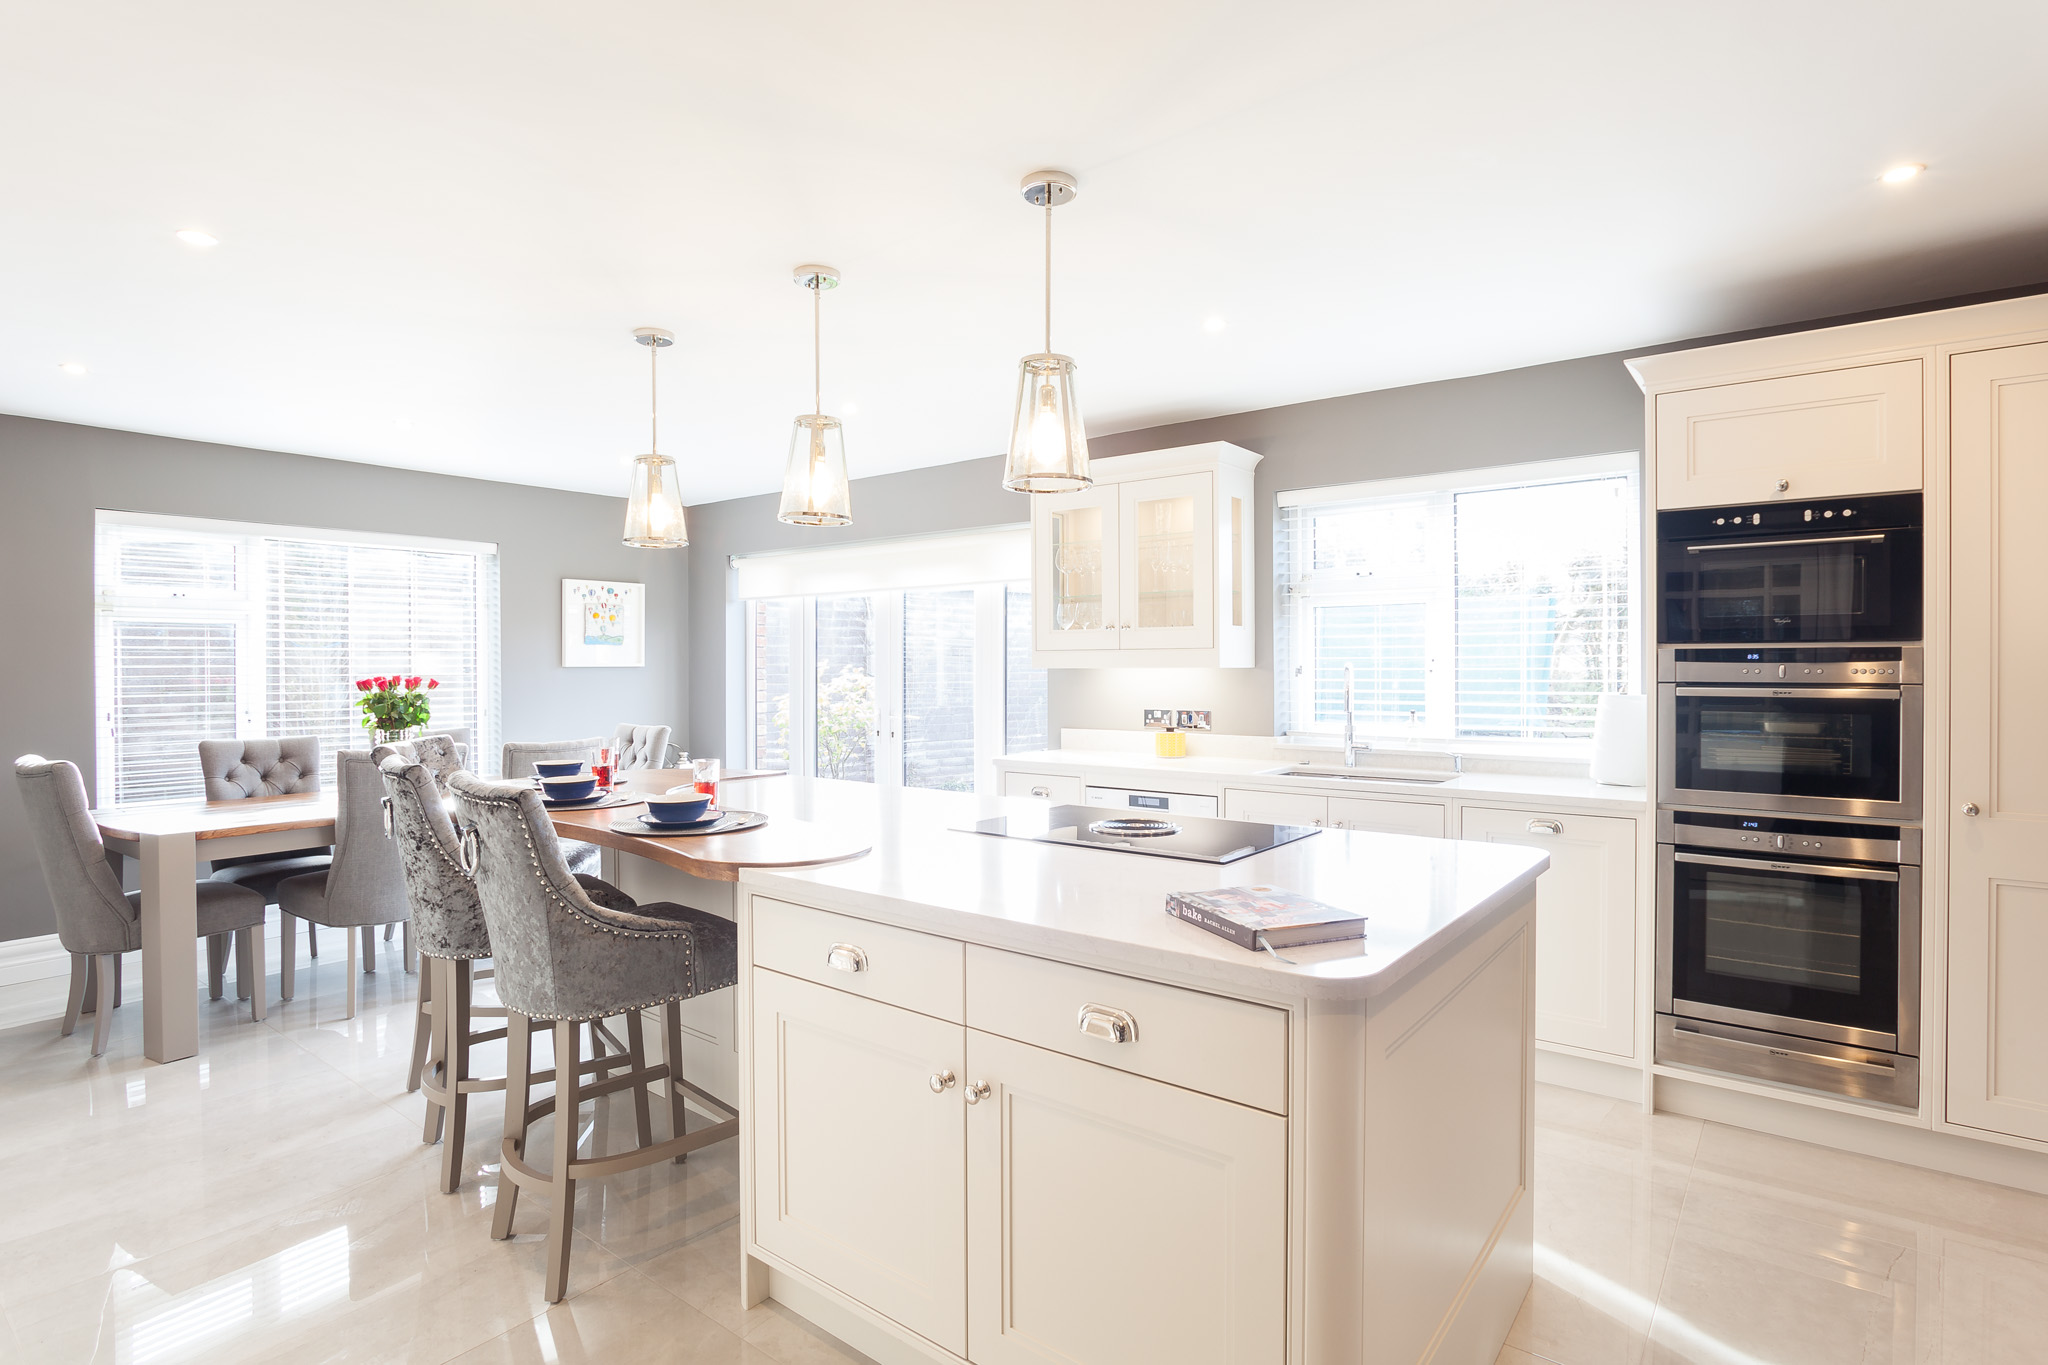 Kitchen of the Month - Celtic Interiors